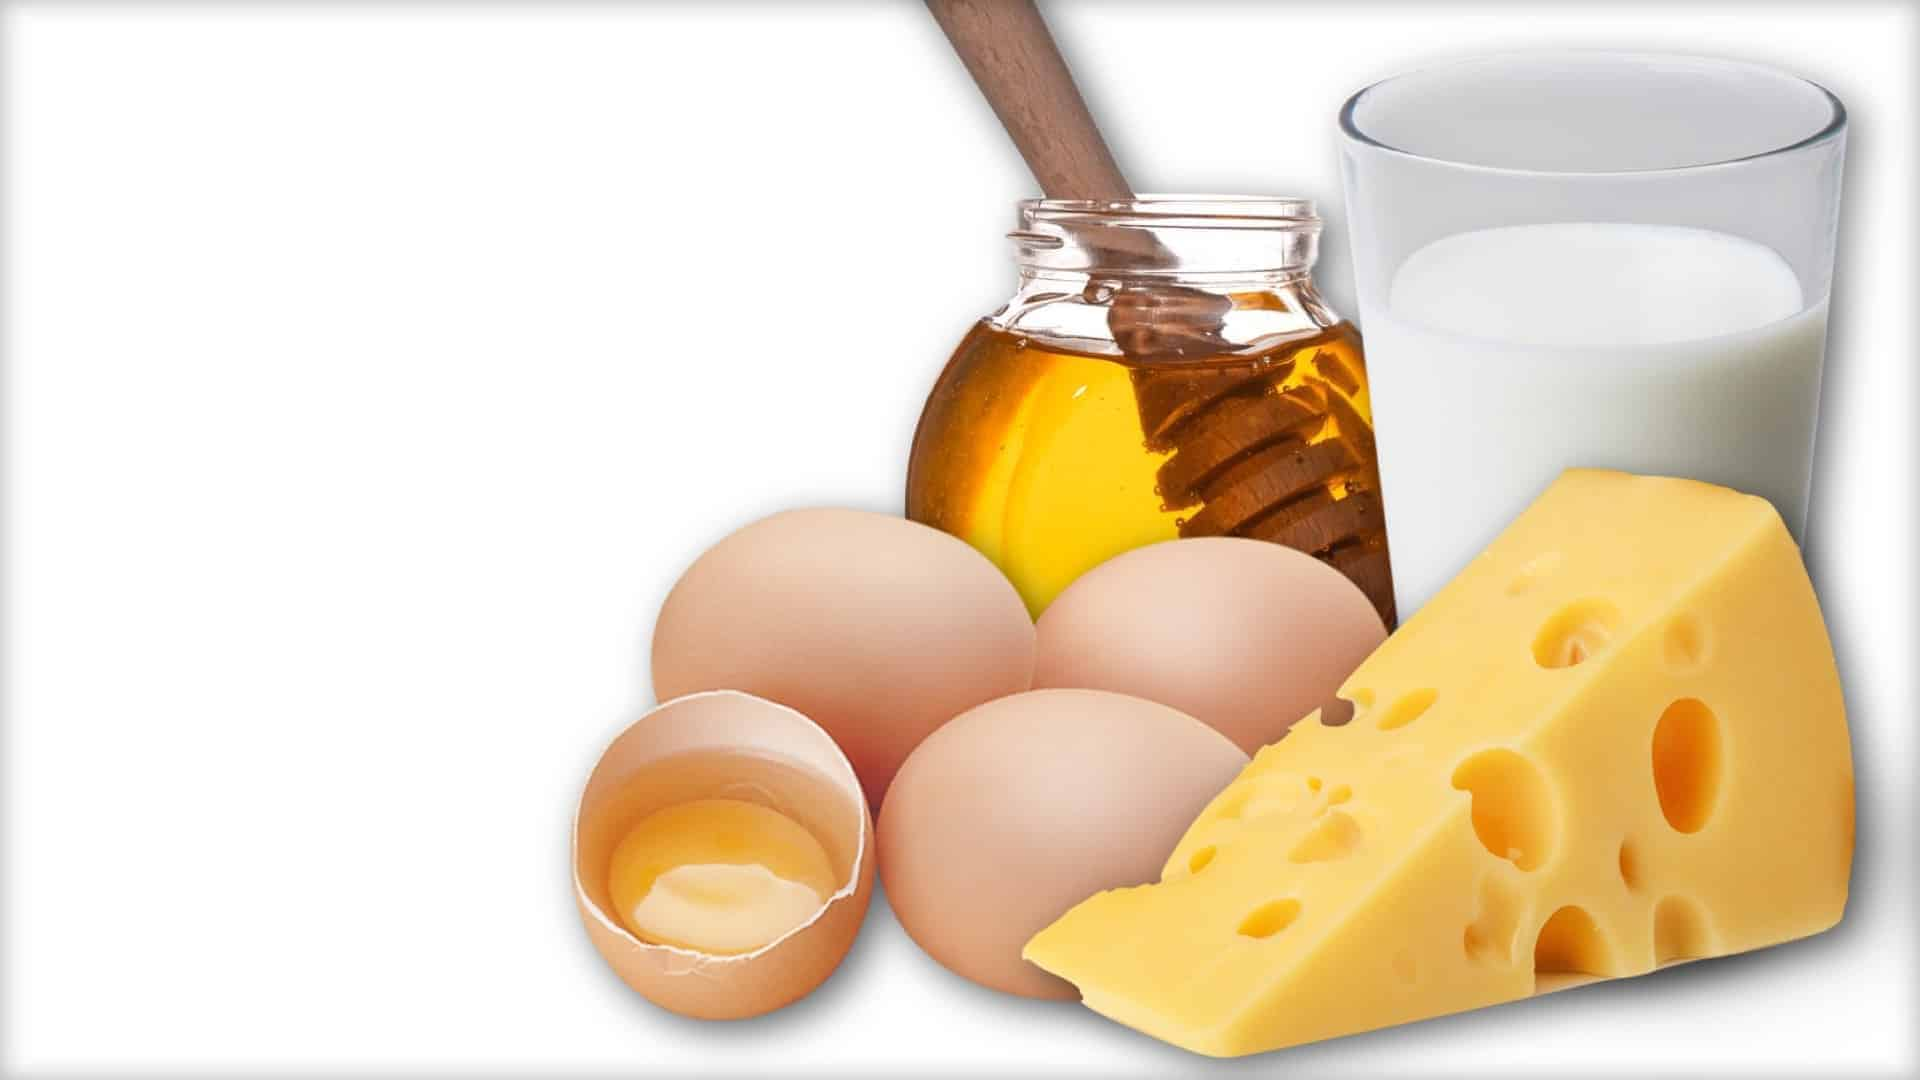 The image shows a number of hen's eggs, a chunk of cheese, a glass of honey and a jar of honey.